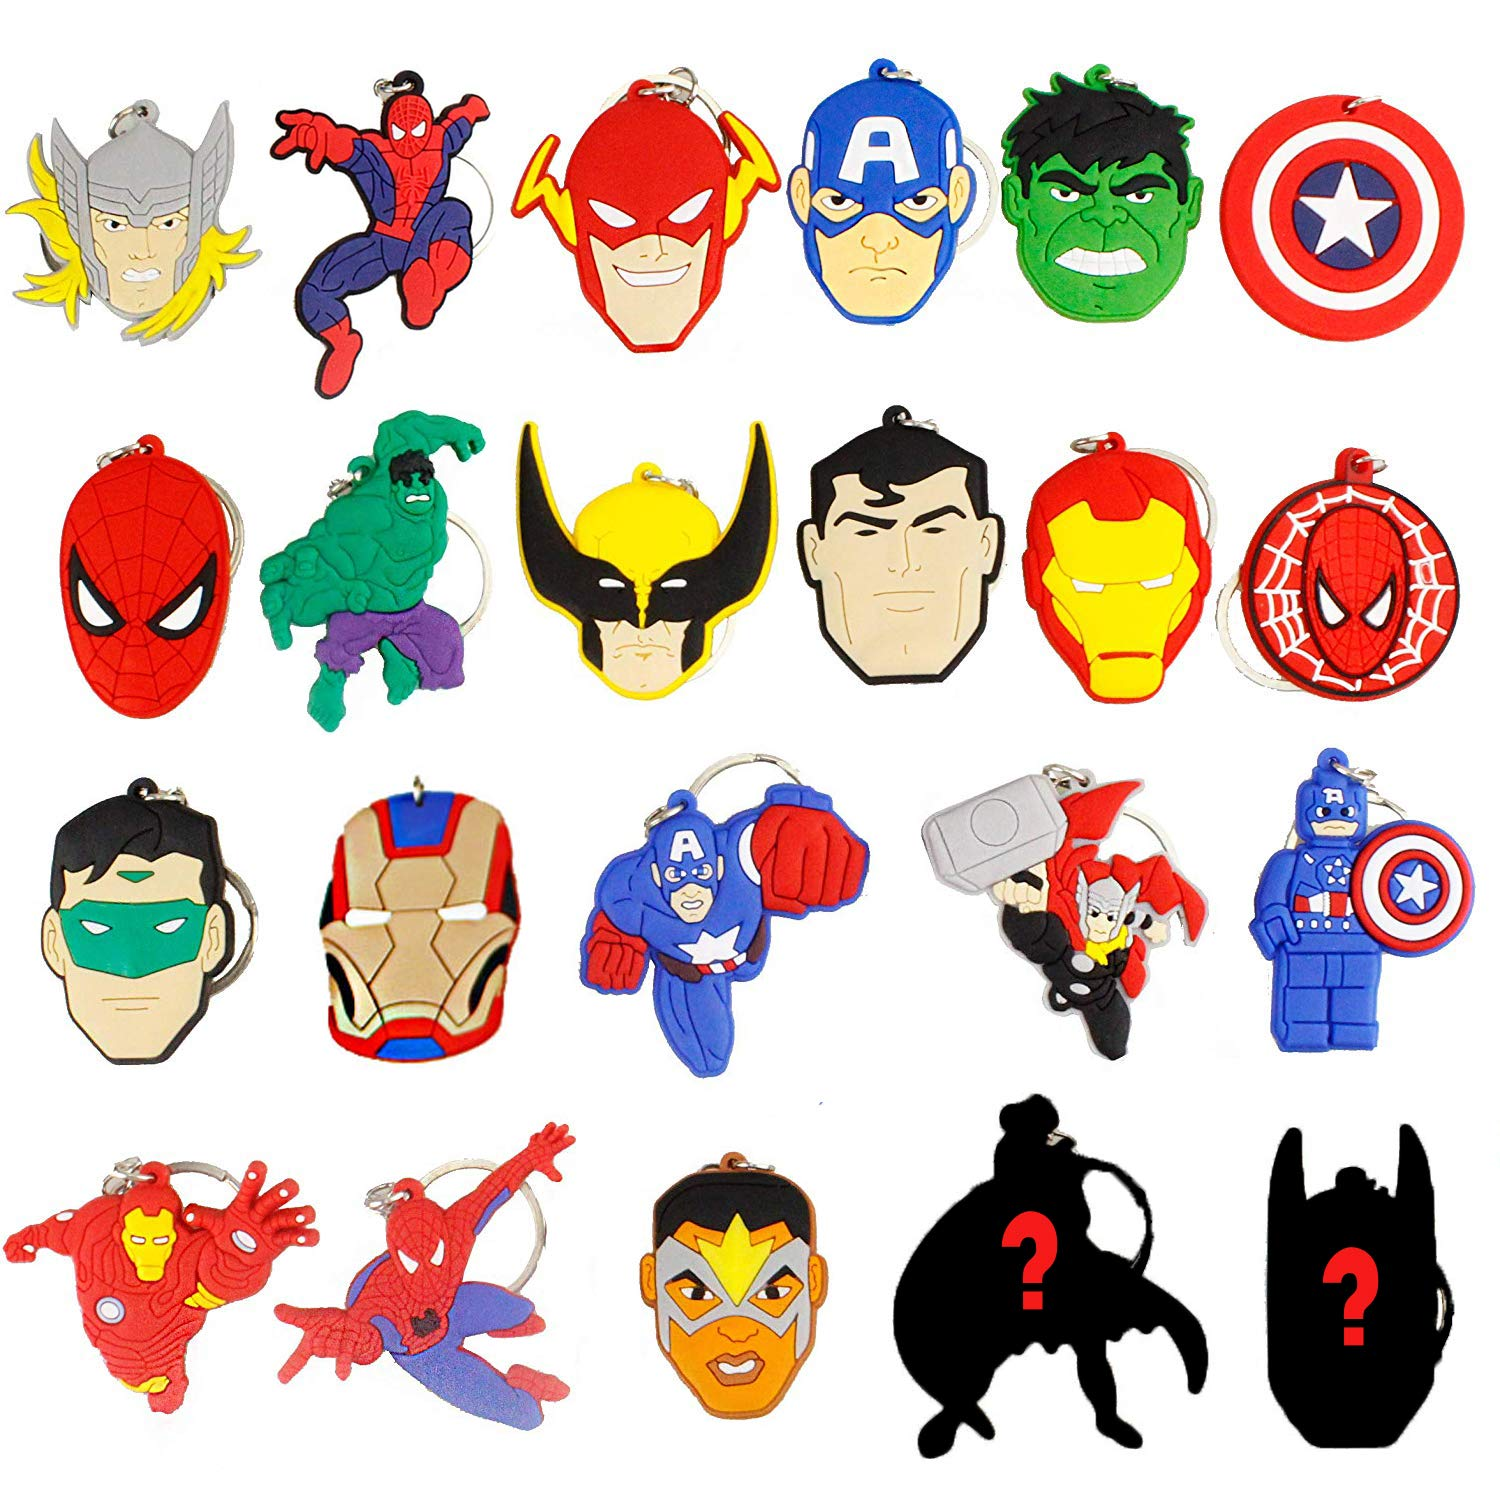 Melleco 20pcs Keychain Key Ring Superhero Theme Goodie Bag Stuffer Christmas Gift Holiday Charms for Kids Children Birthday Party Favors School Carnival Reward Prizes Decoration Collectible